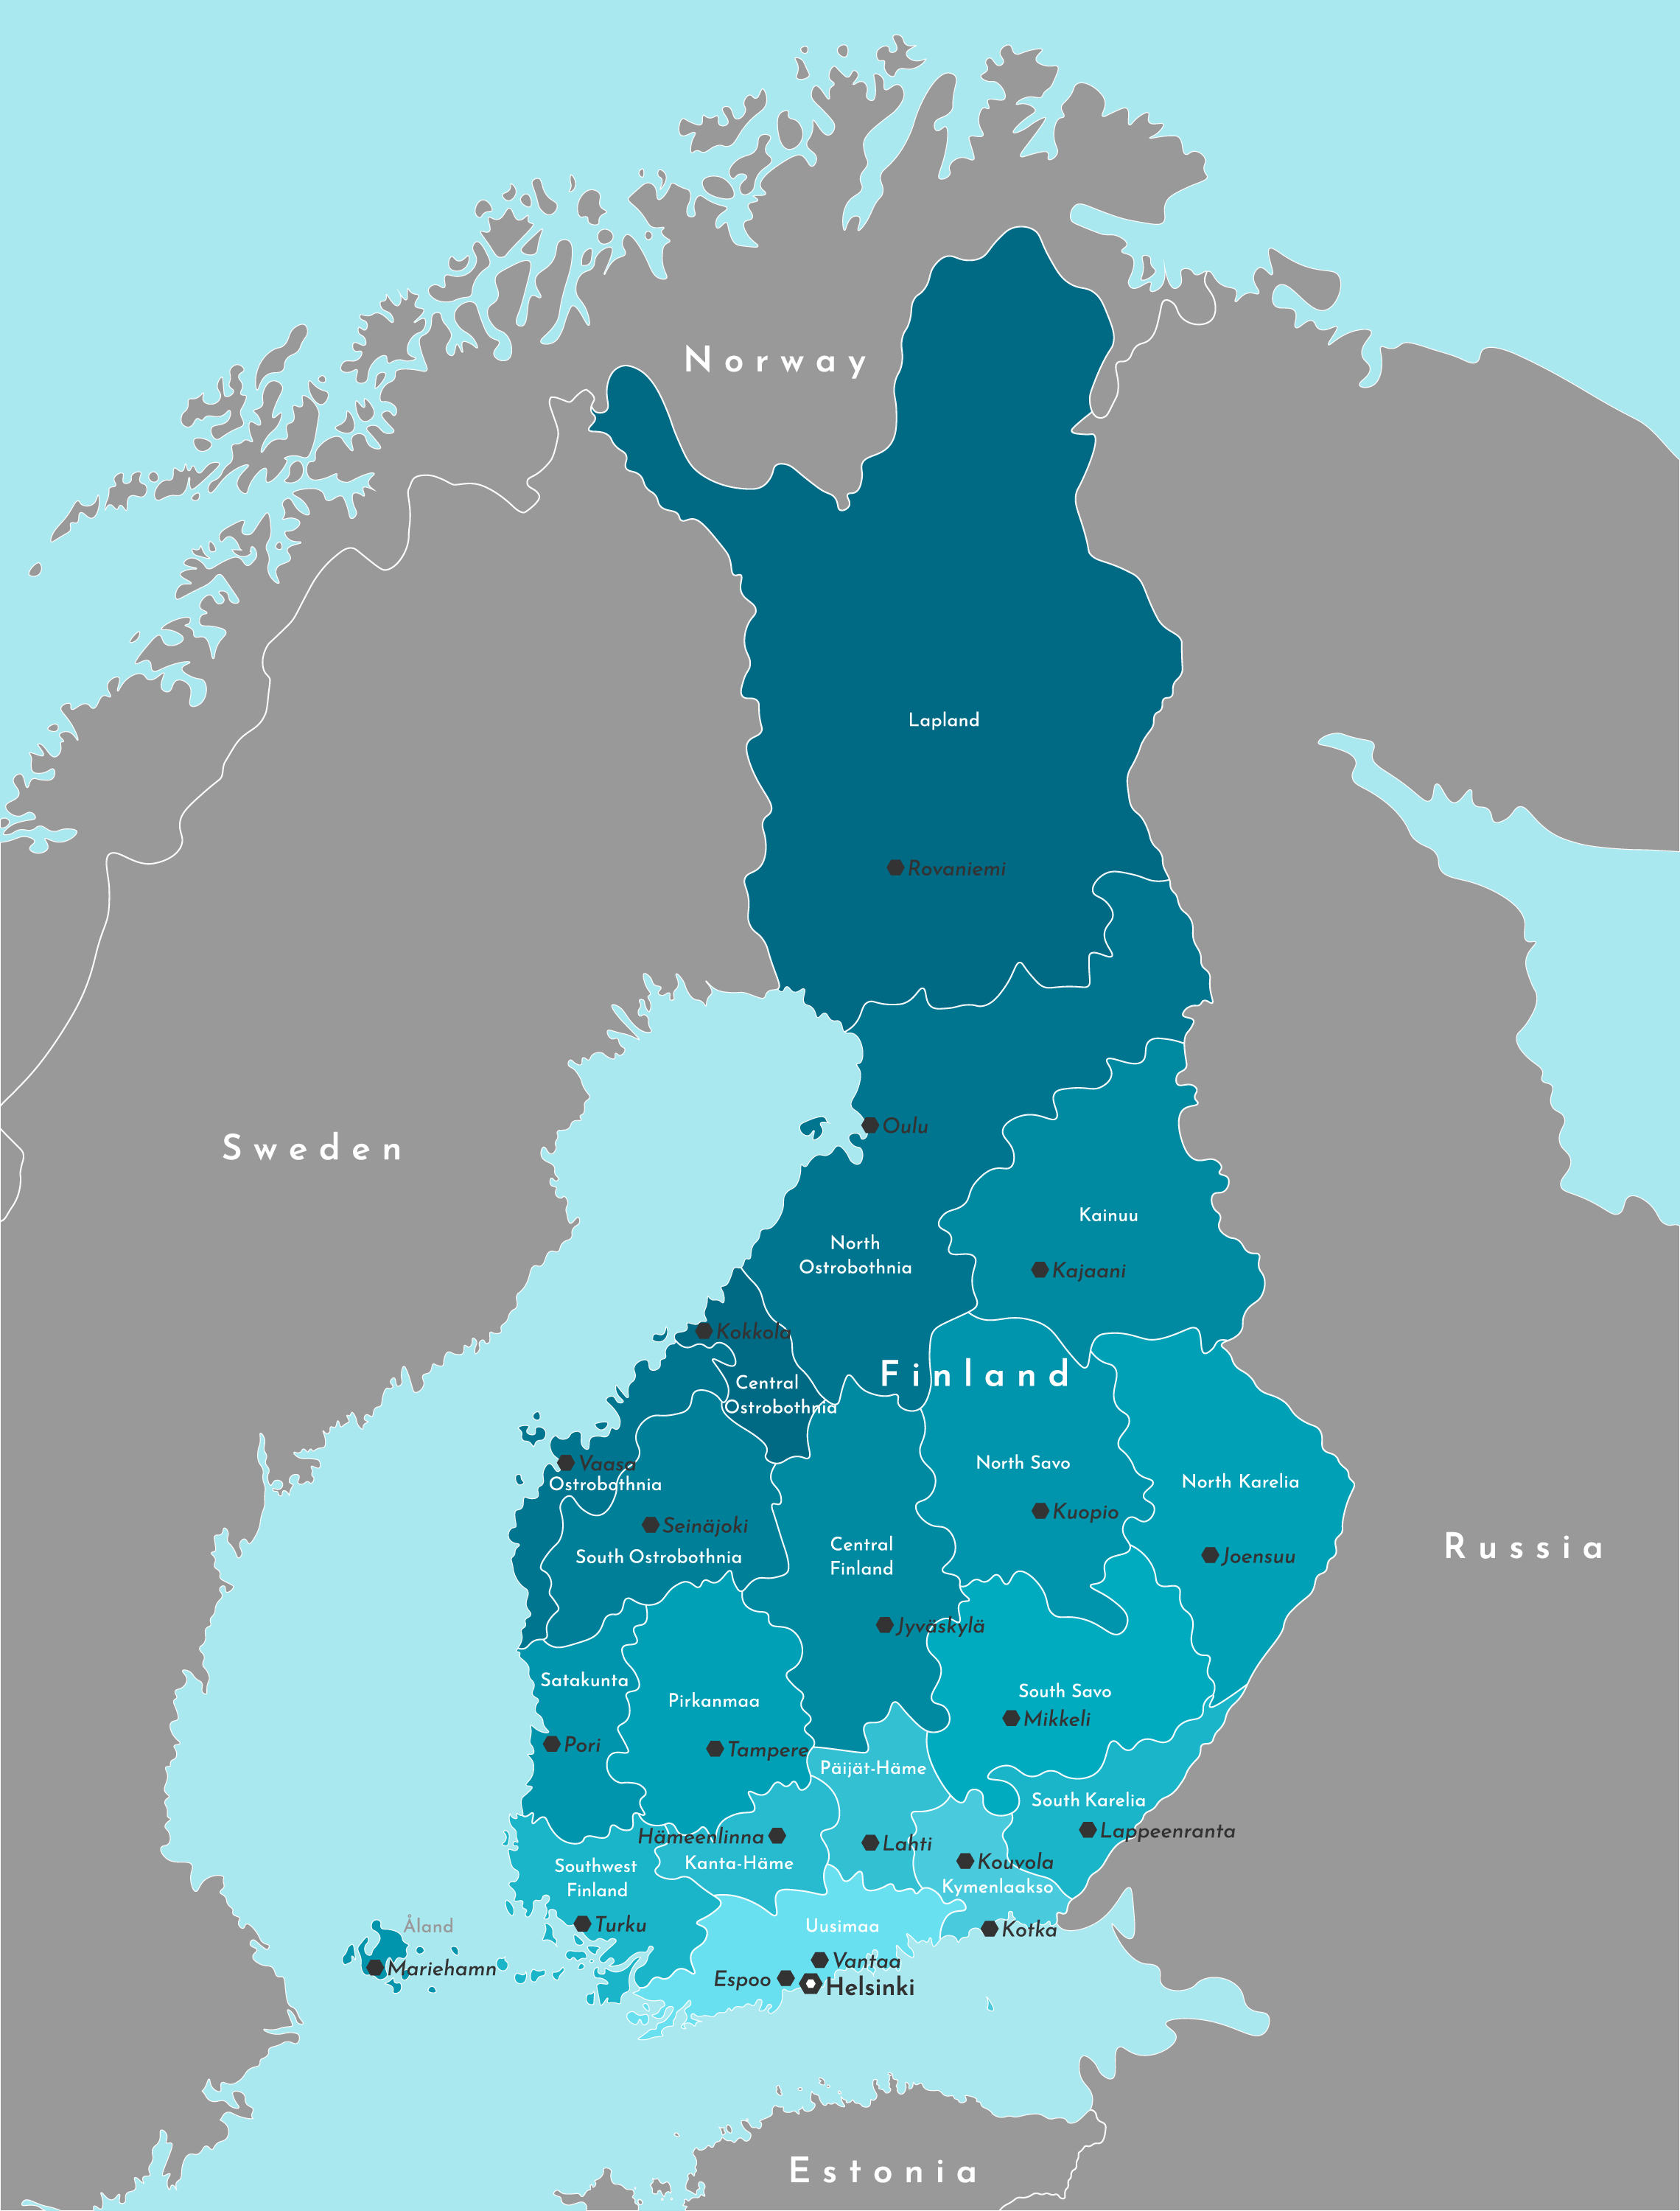 Political Map of Finland showing its 19 regions and the capital city of Helsinki